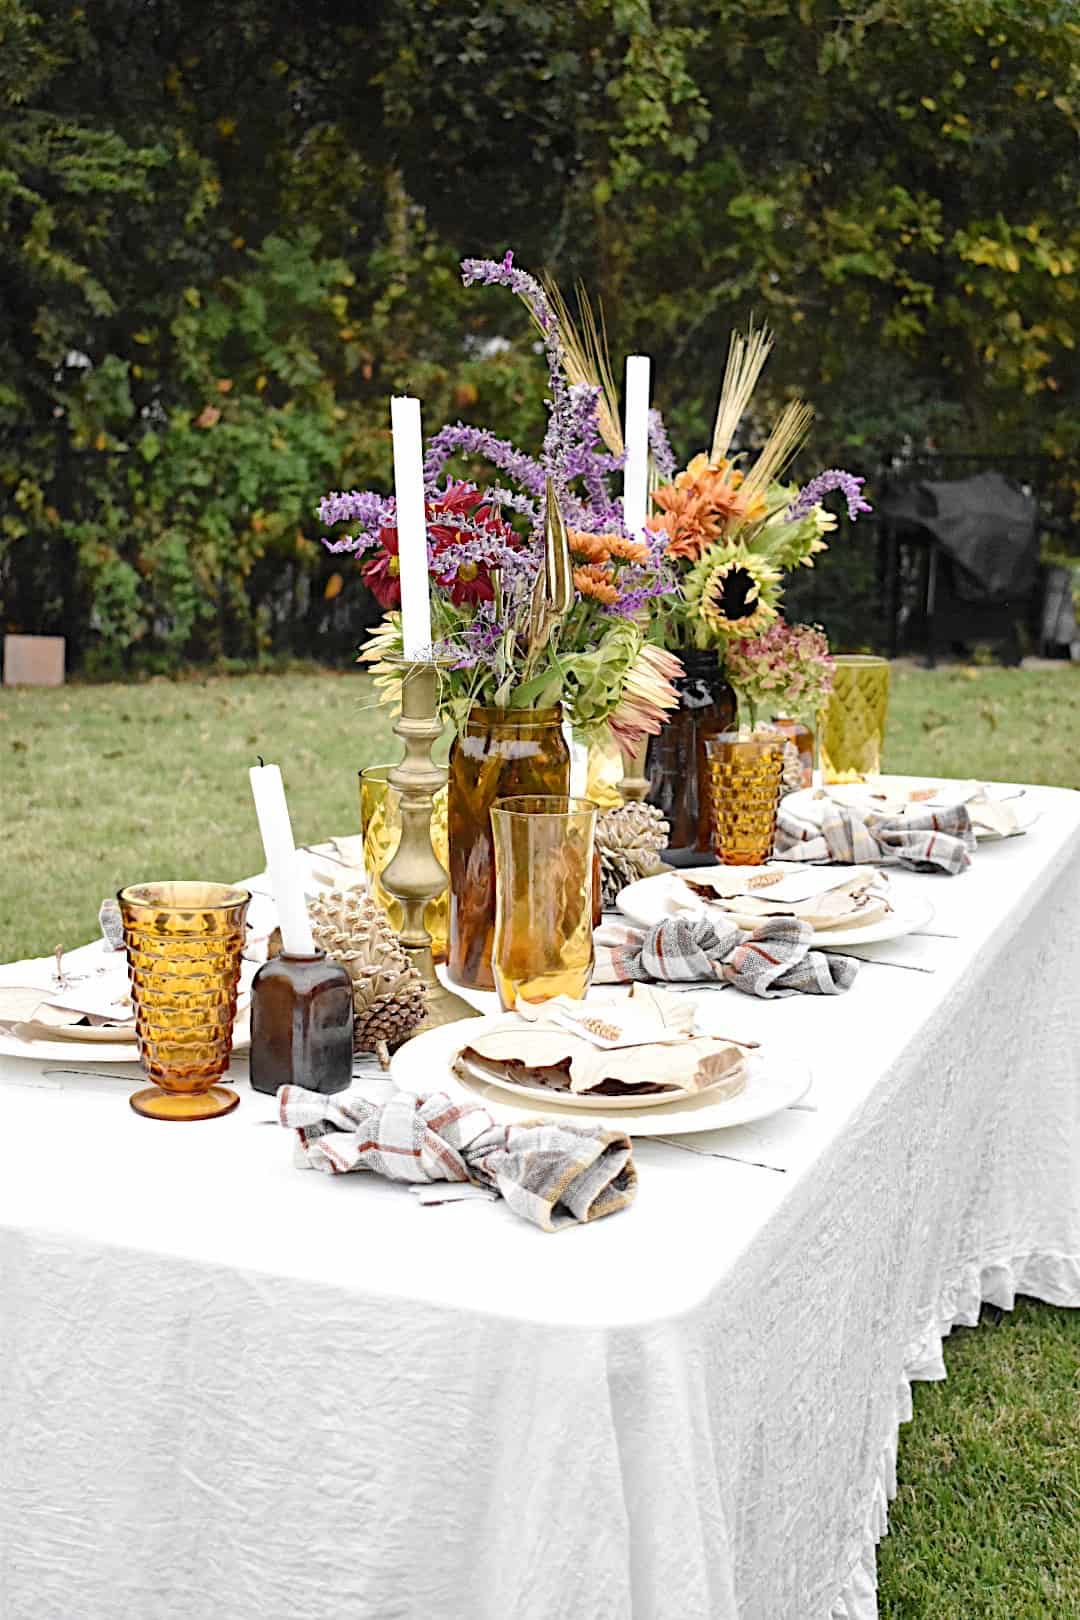 fall tablescape with amber glasses, plaid napkins tied in a knot, white dinner plates, dried leaves on top of plates and fall florals in a large amber vase in center of table